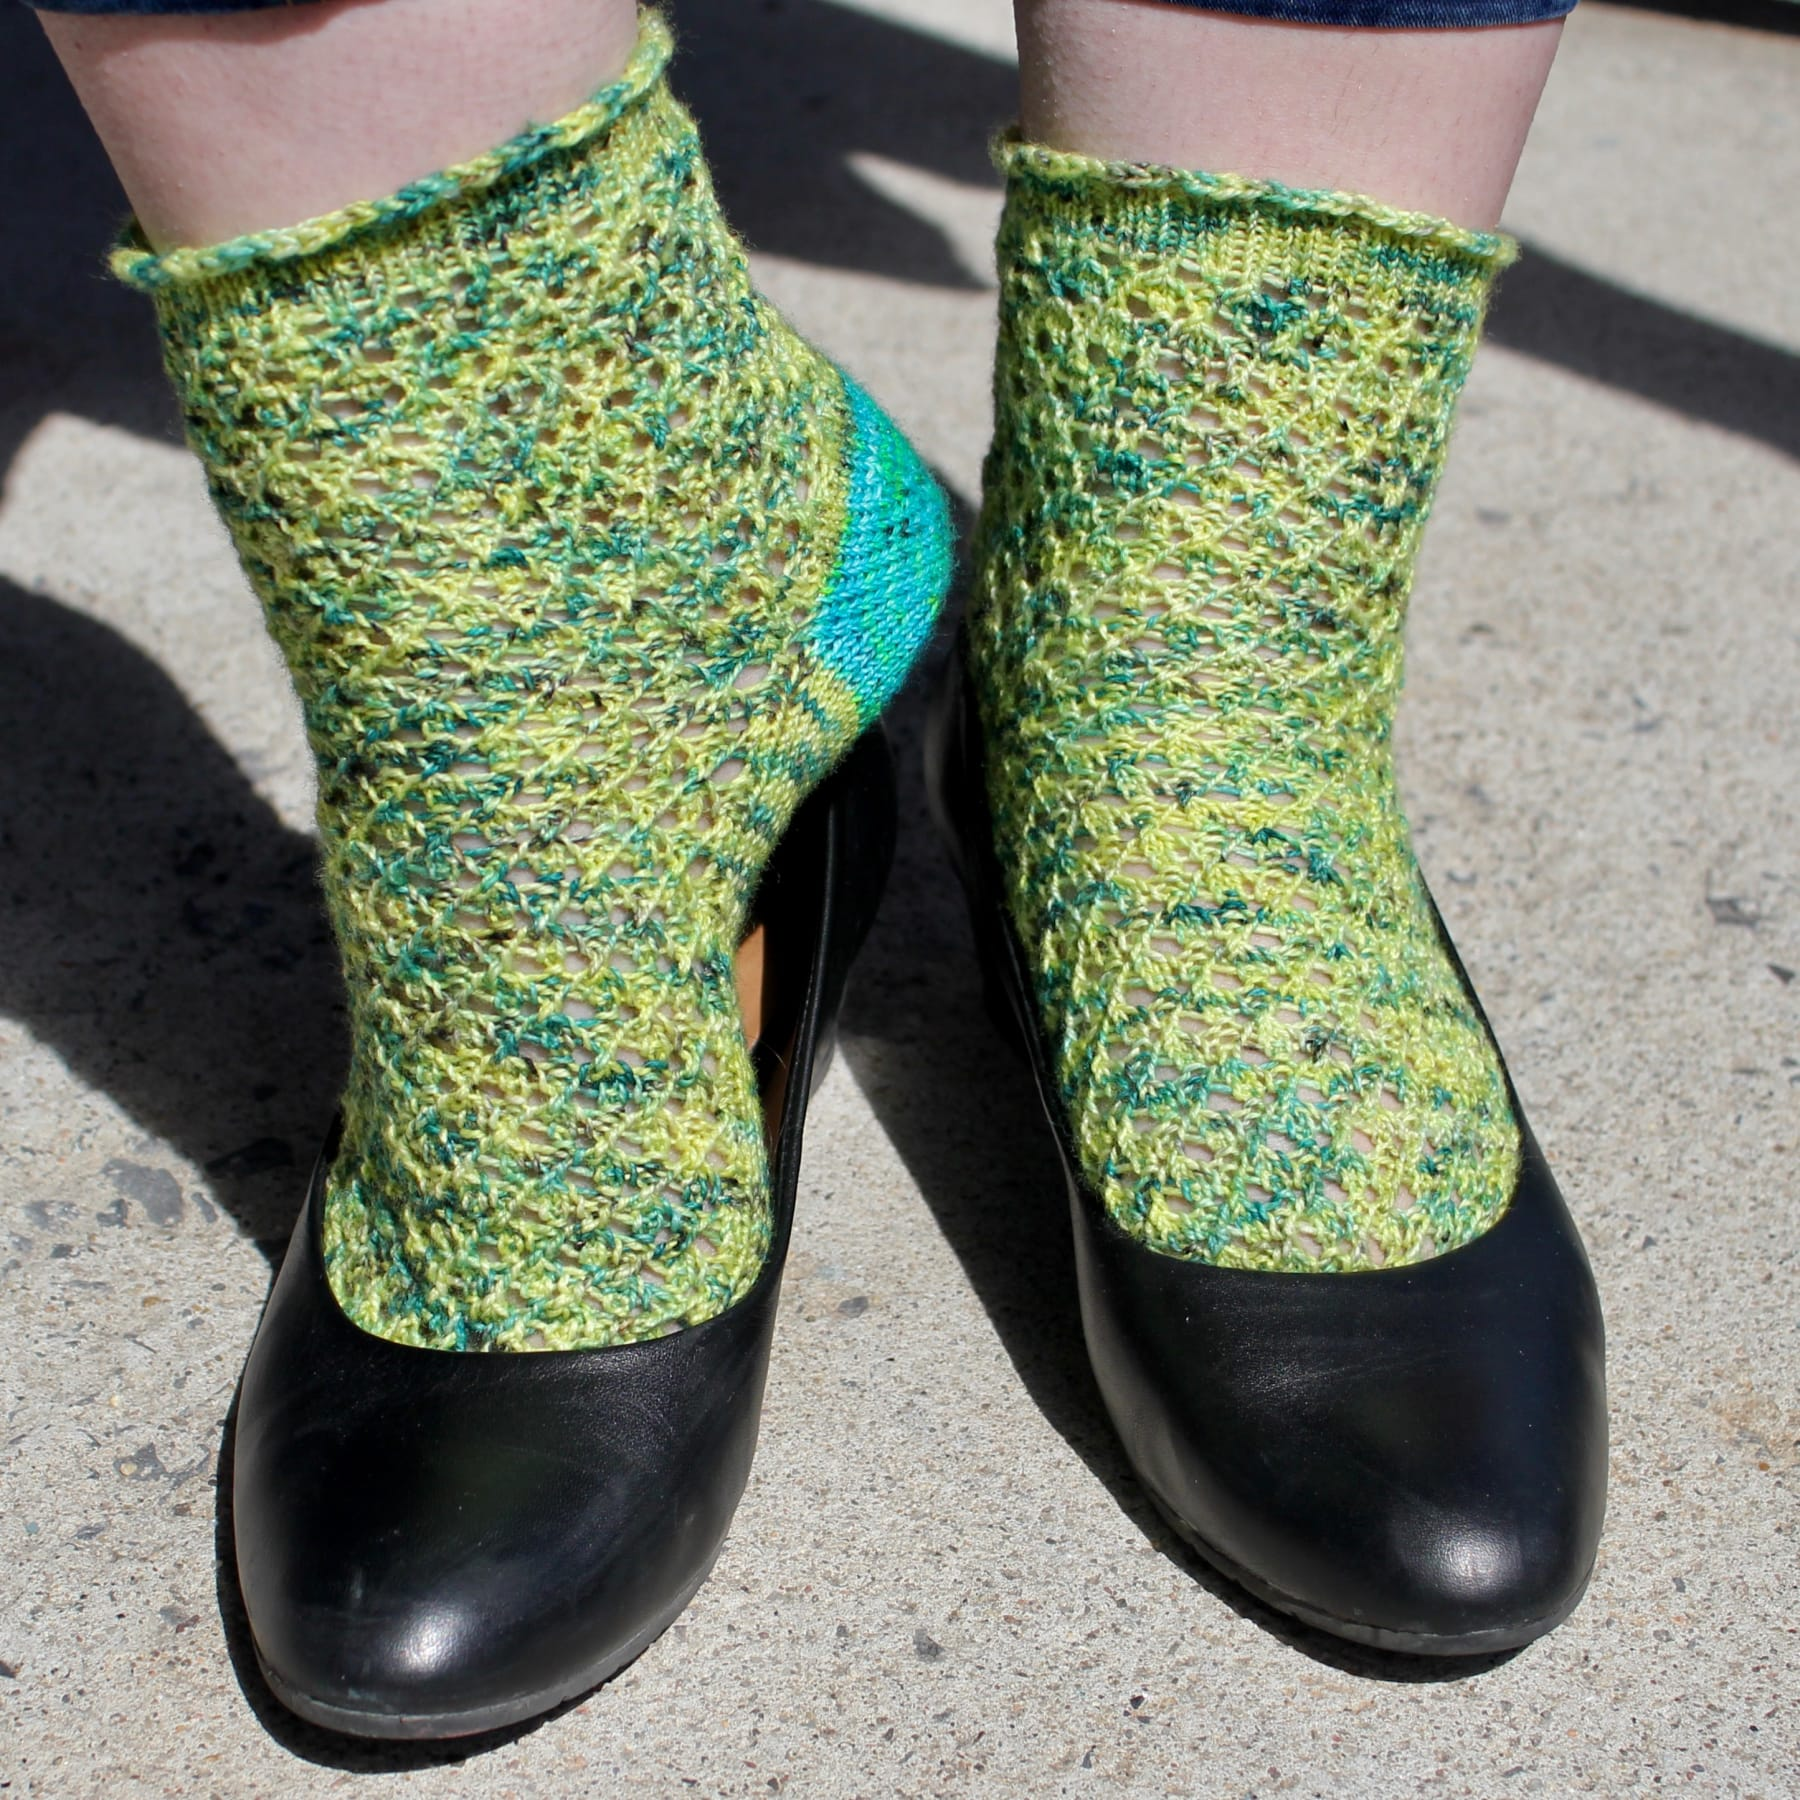 Feet wearing yellow and green lace socks; one foot is turned sideways to reveal a bright blue sock heel.